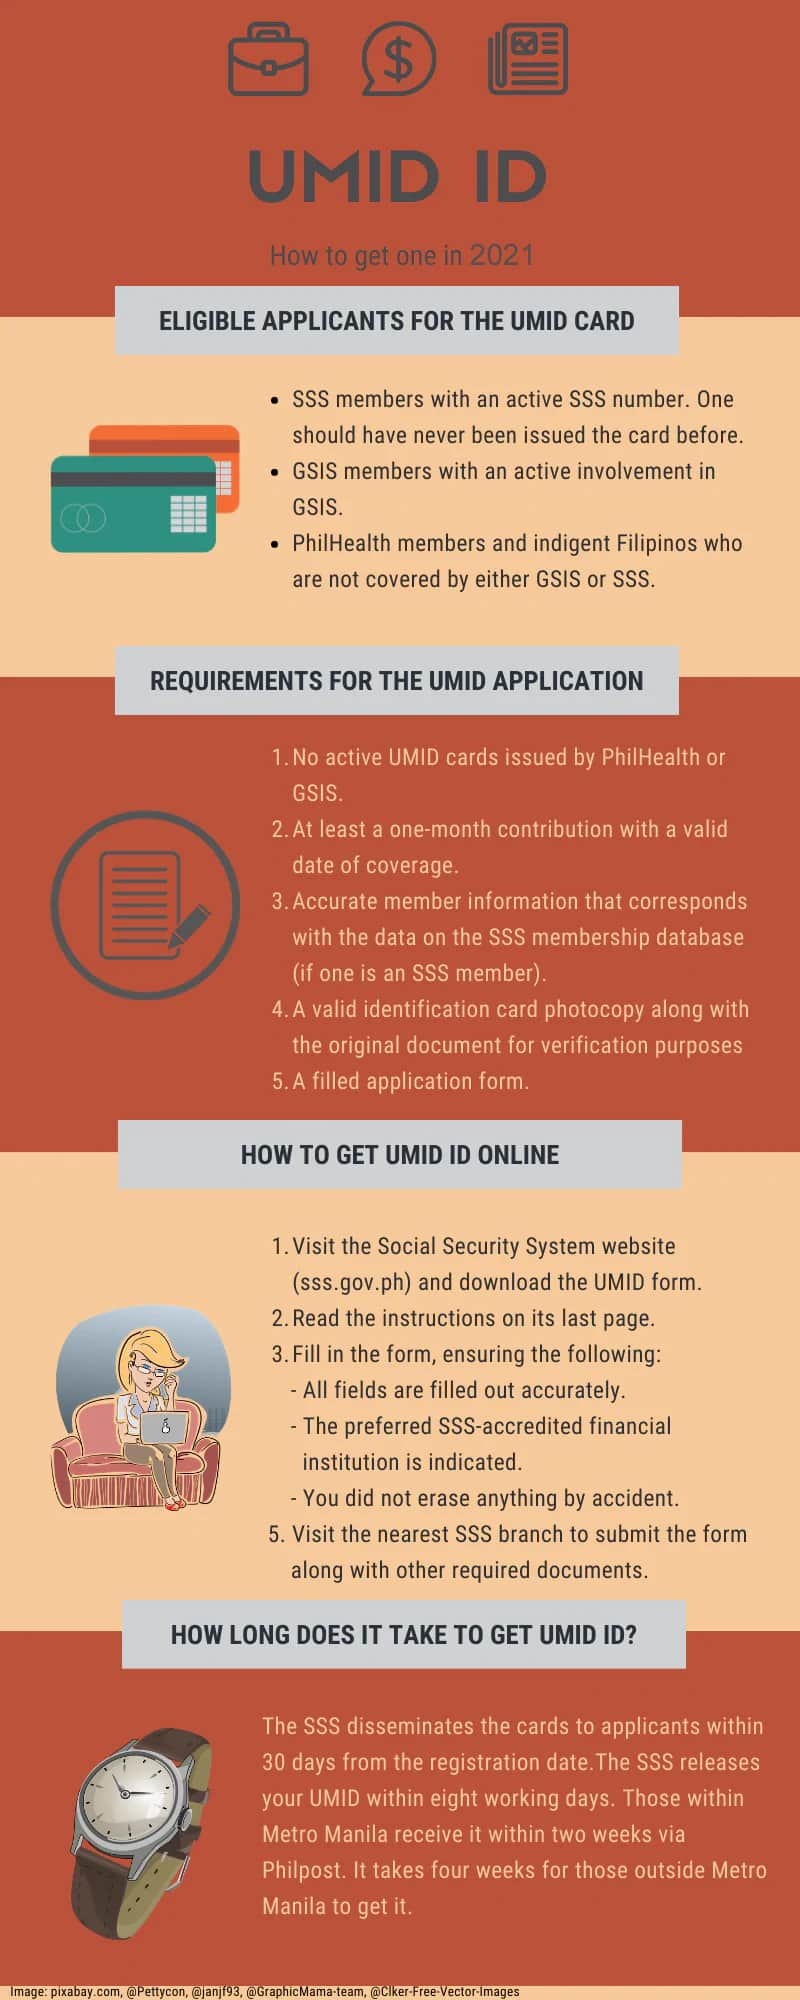 How to get UMID ID 2021